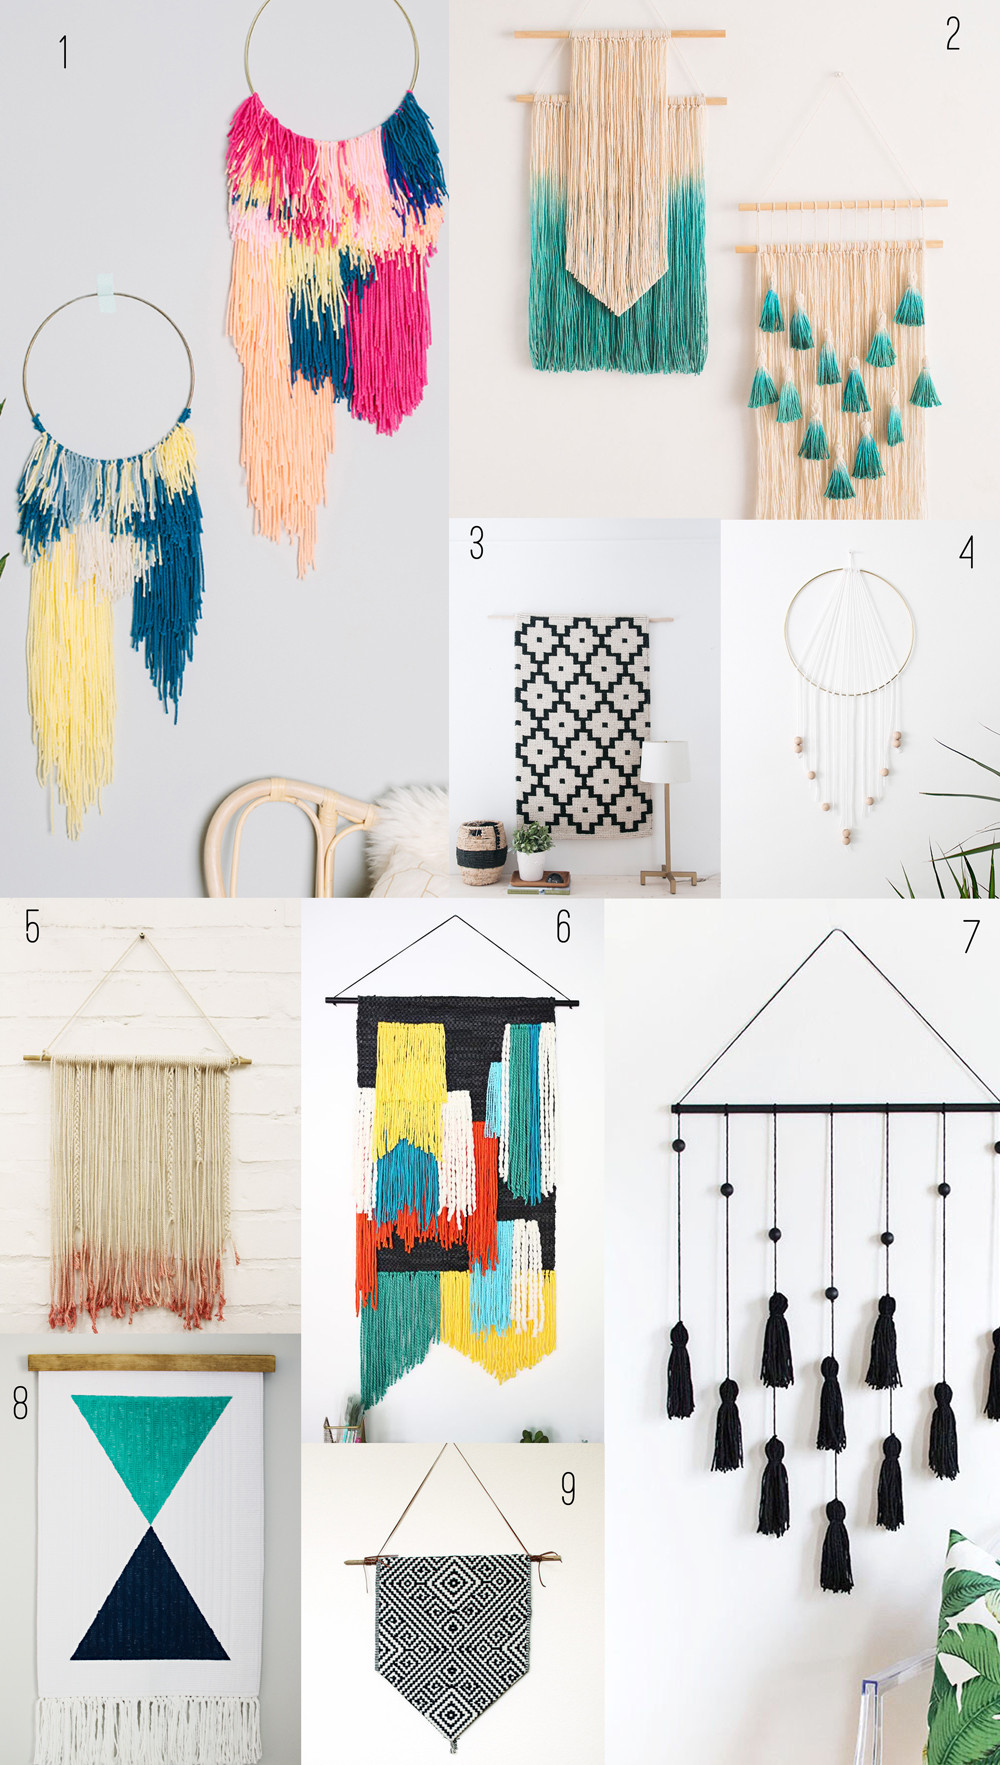 Best ideas about Wall Decors DIY . Save or Pin 9 AMAZING DIY WALL HANGINGS Tell Love and Party Now.